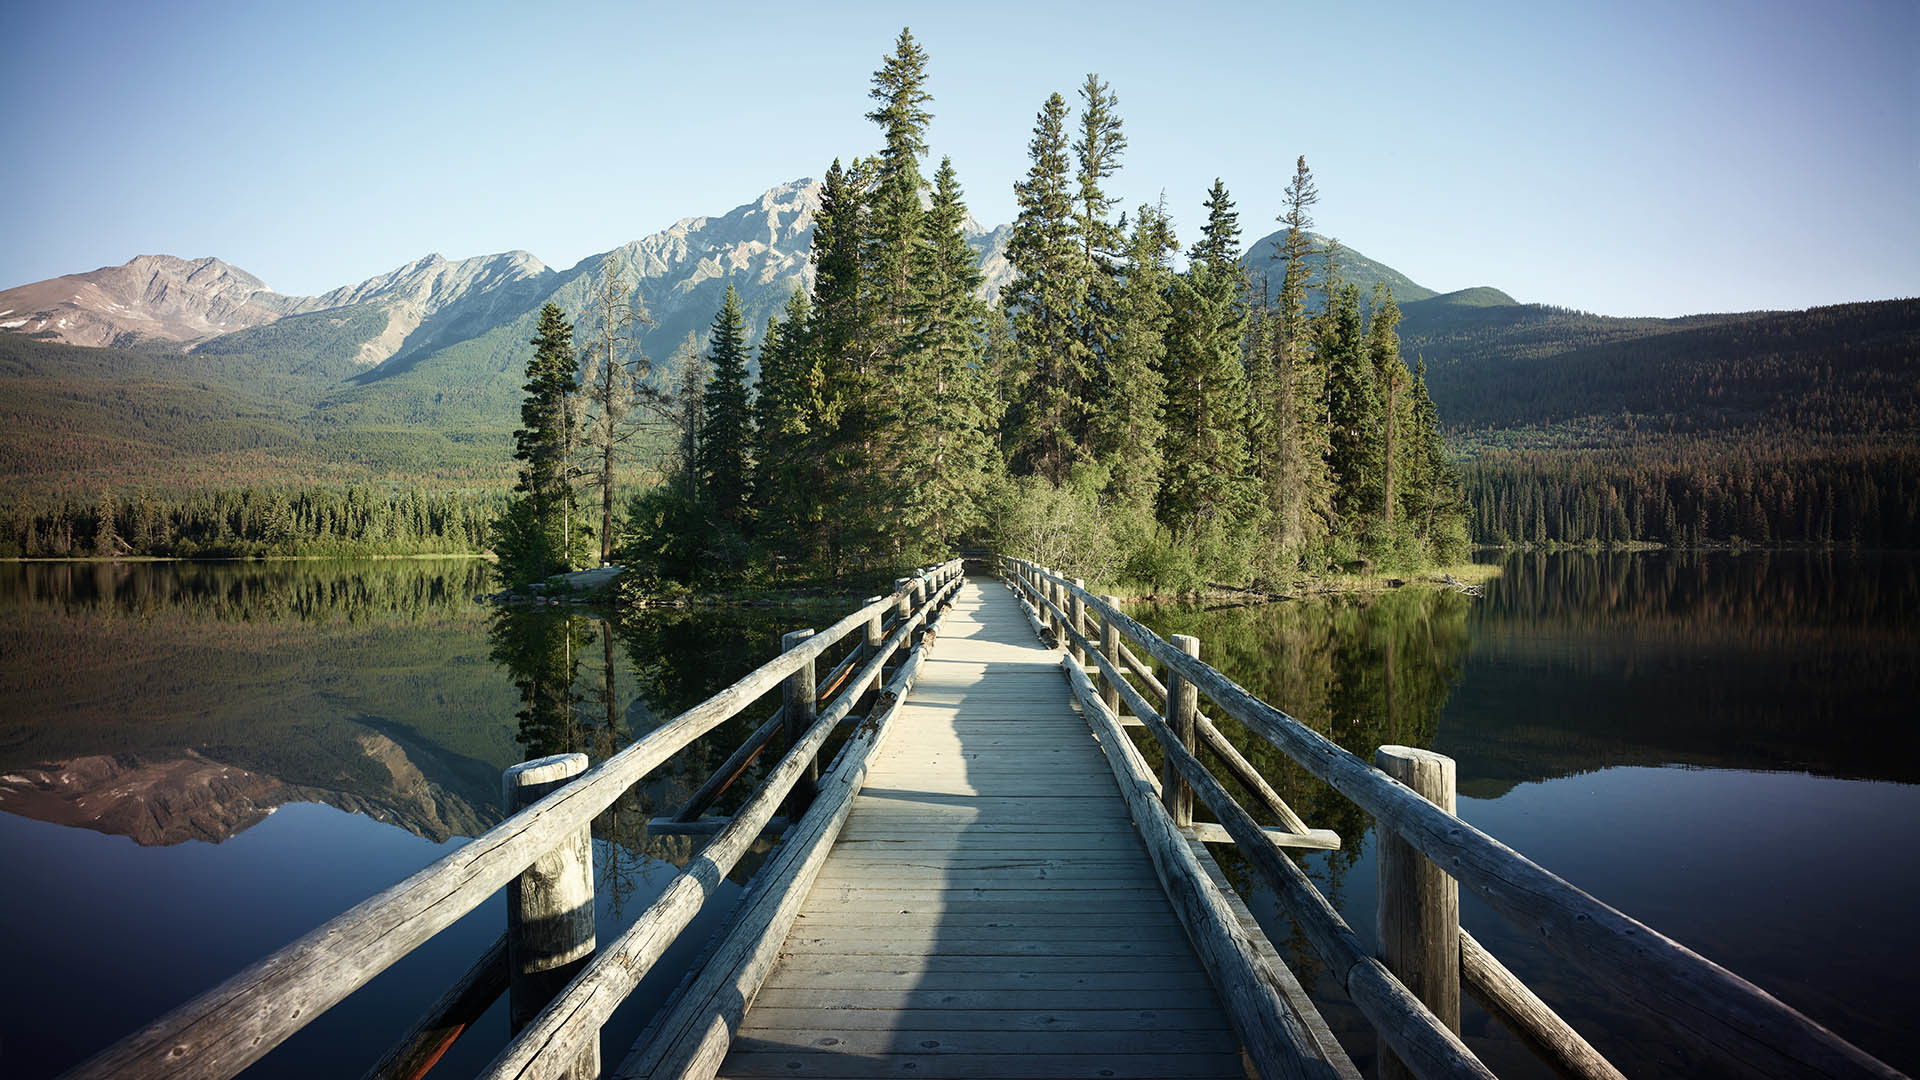 Wooden bridge over mountain lake with fir forest on bank